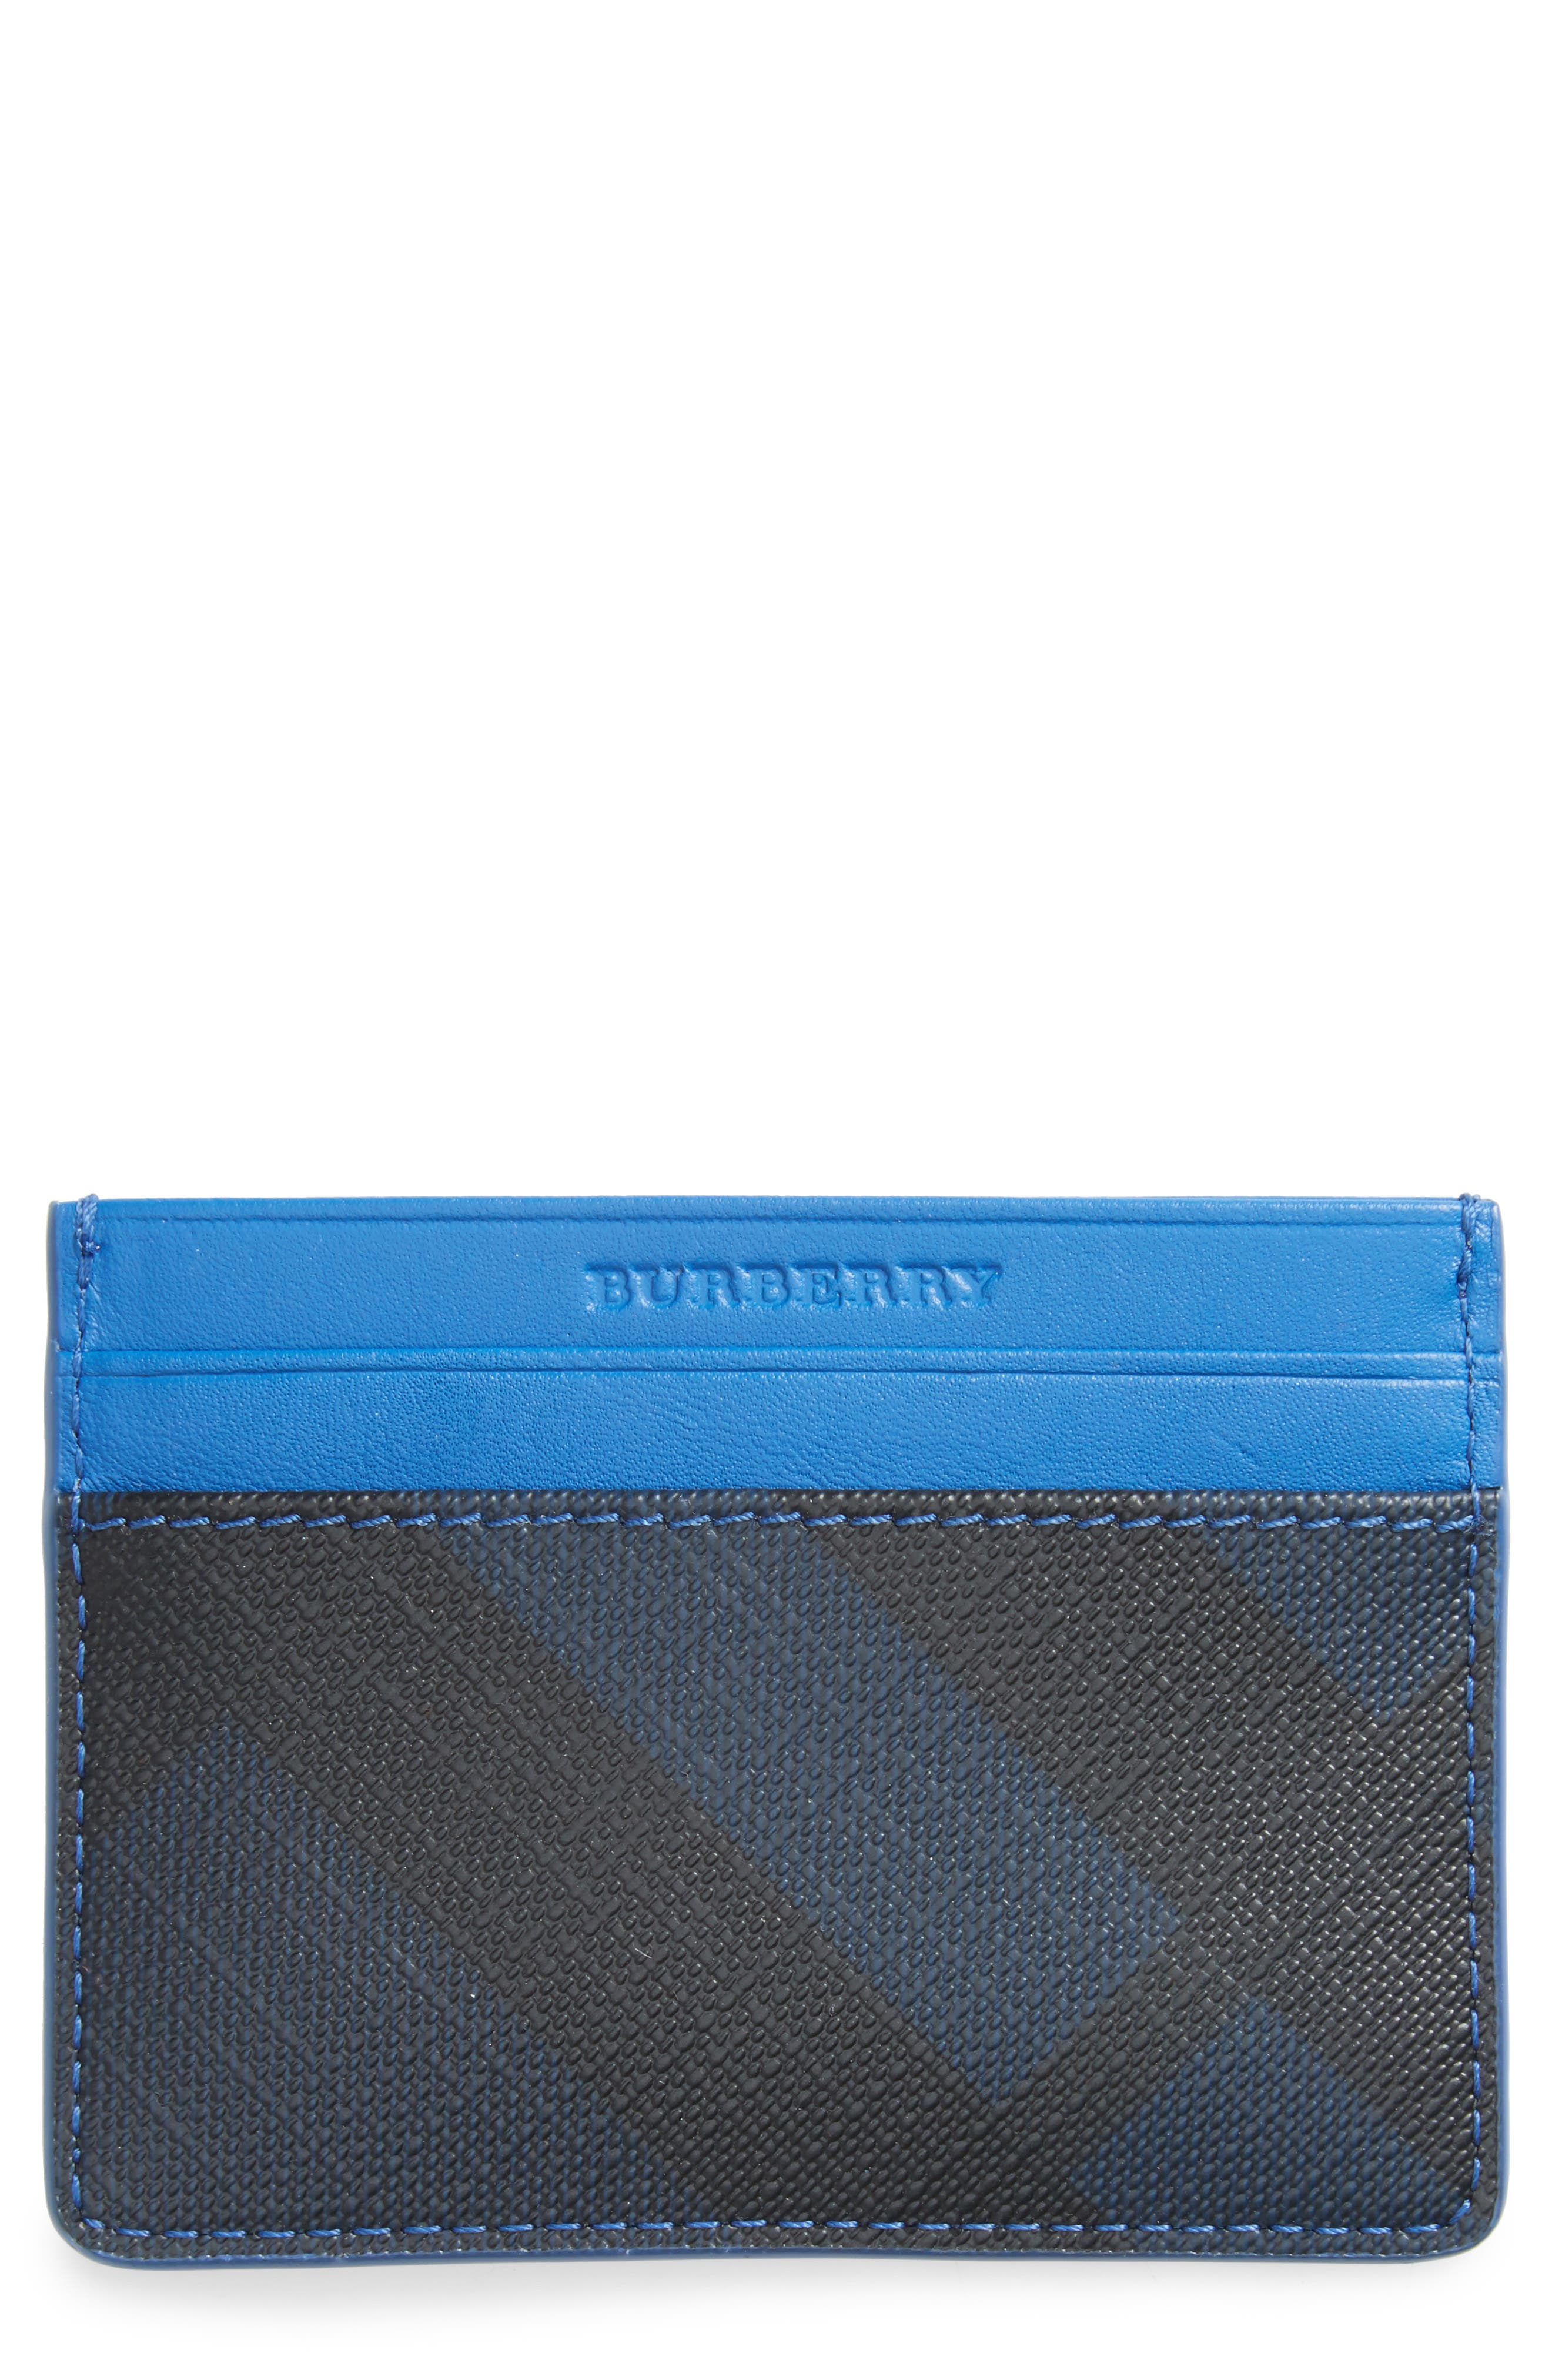 Burberry Check Faux Leather Card Case